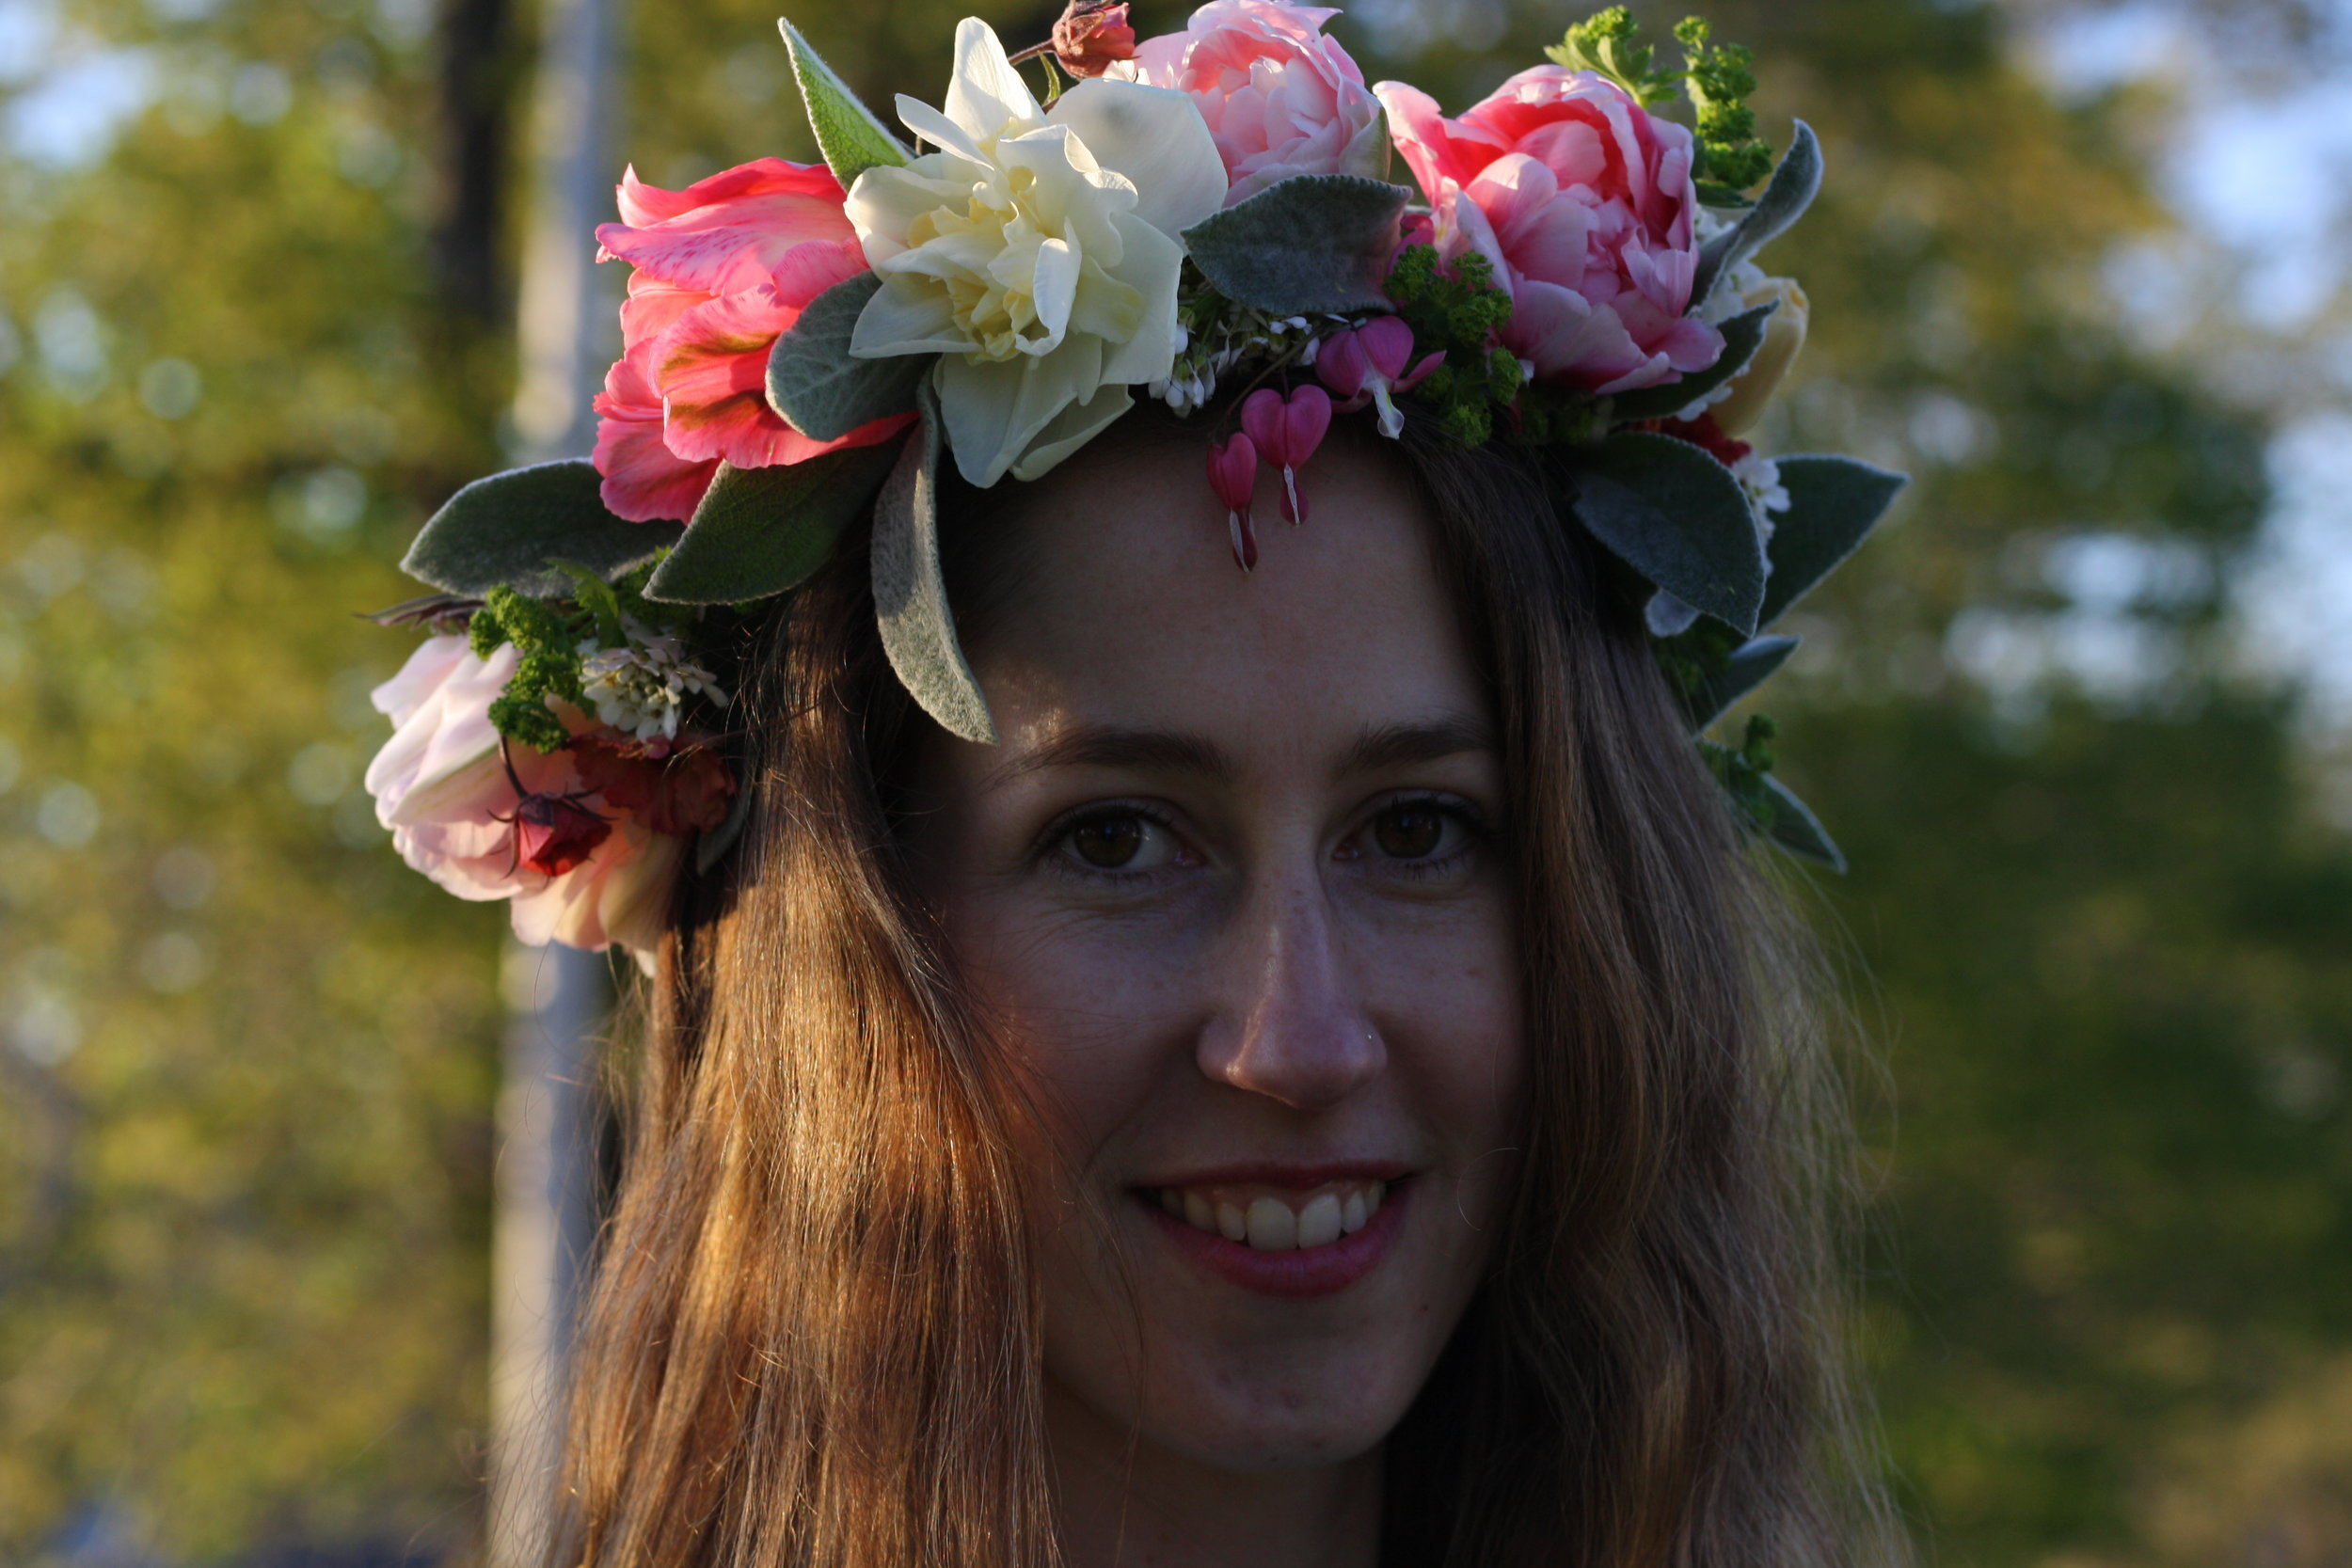 A spring floral crown from Hedgerow, Nova Scotia.